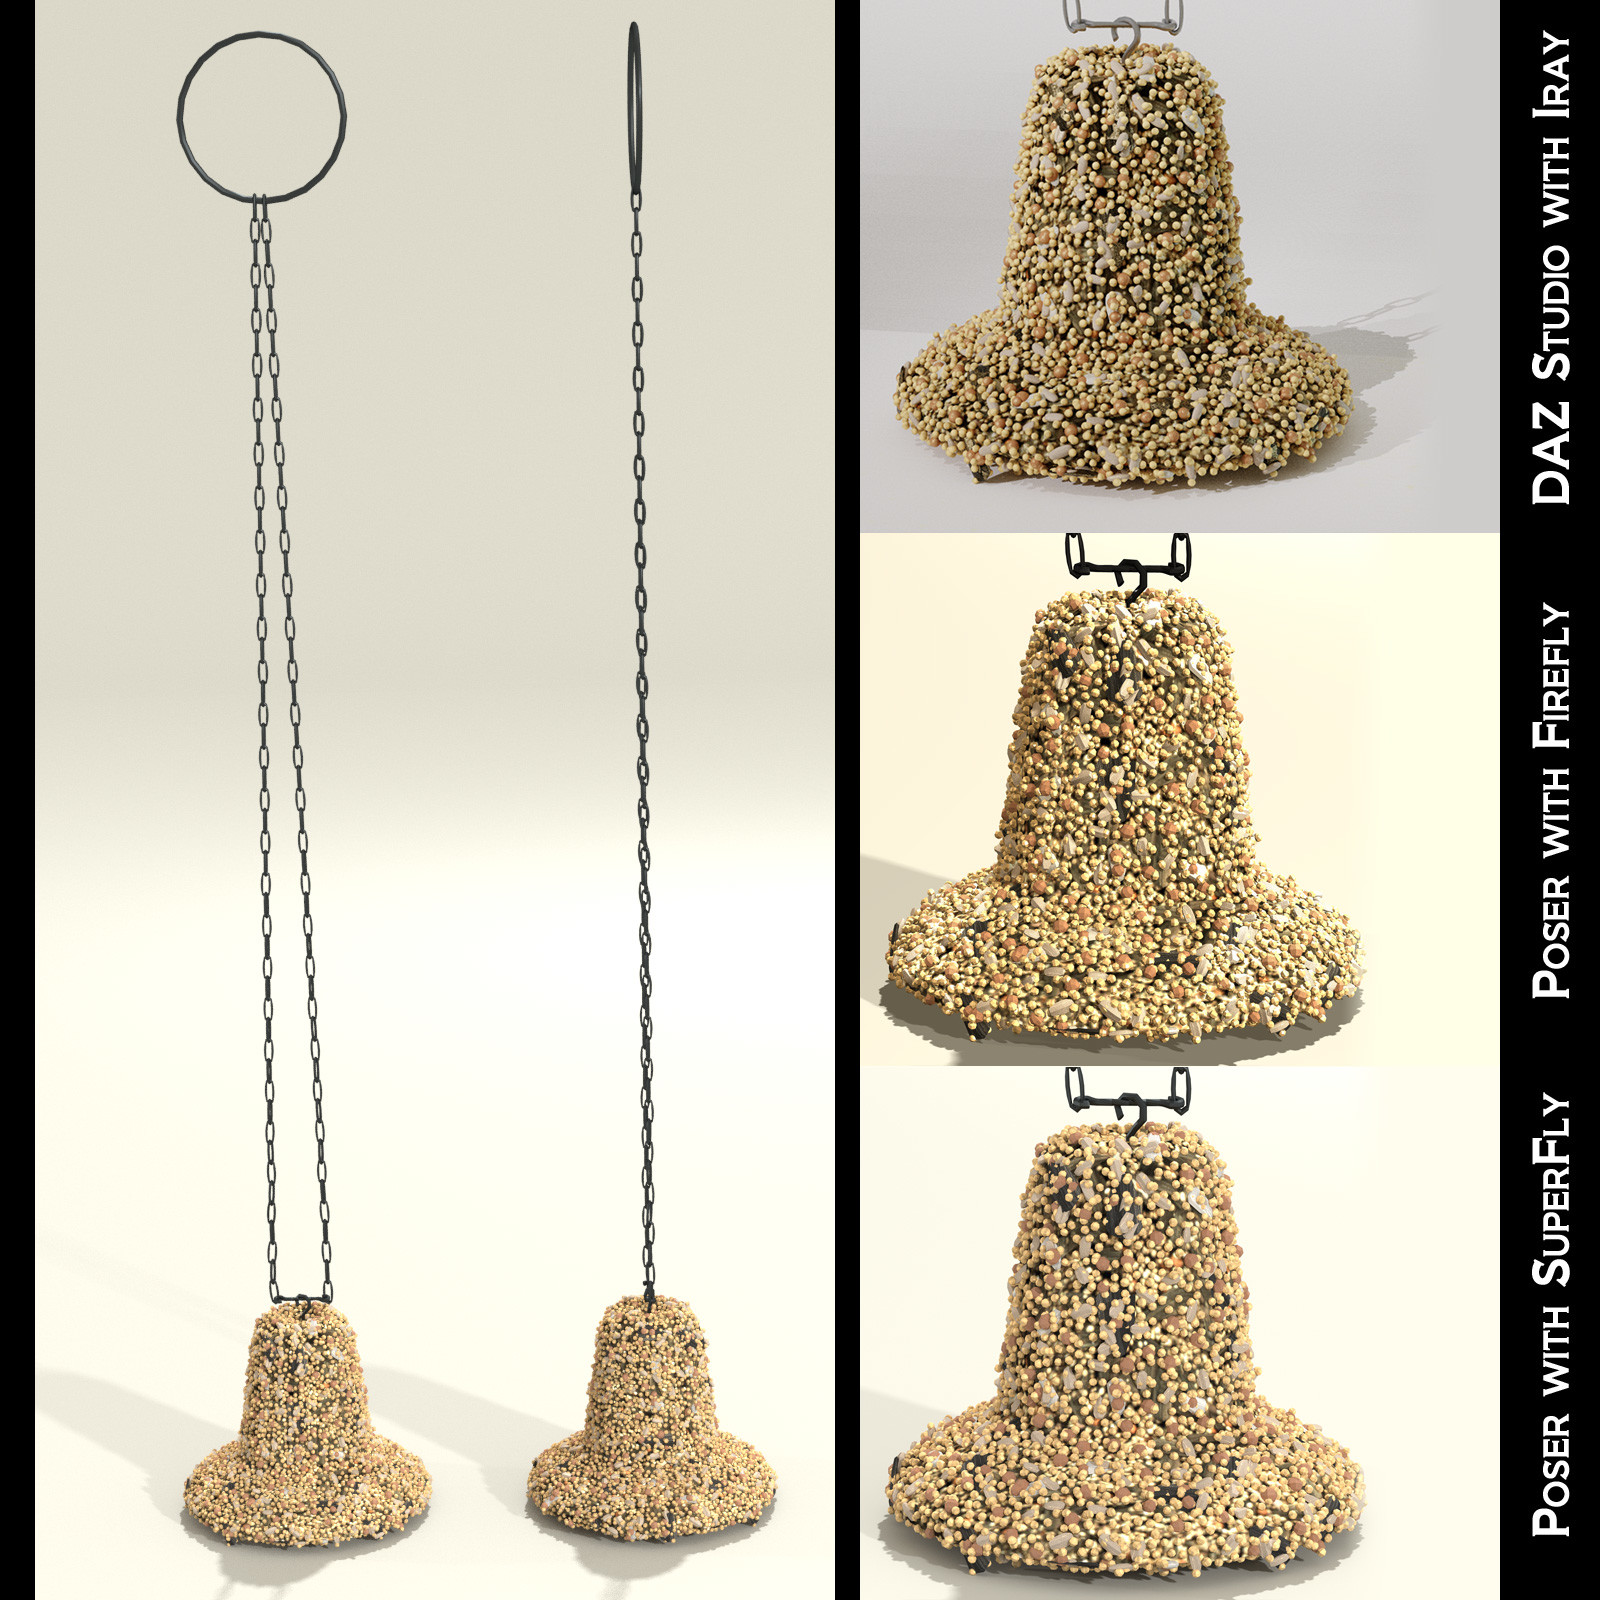 This shows the front and side views of the bell-shaped seed cakes, along with closeup examples of how it looks inside each render engine.